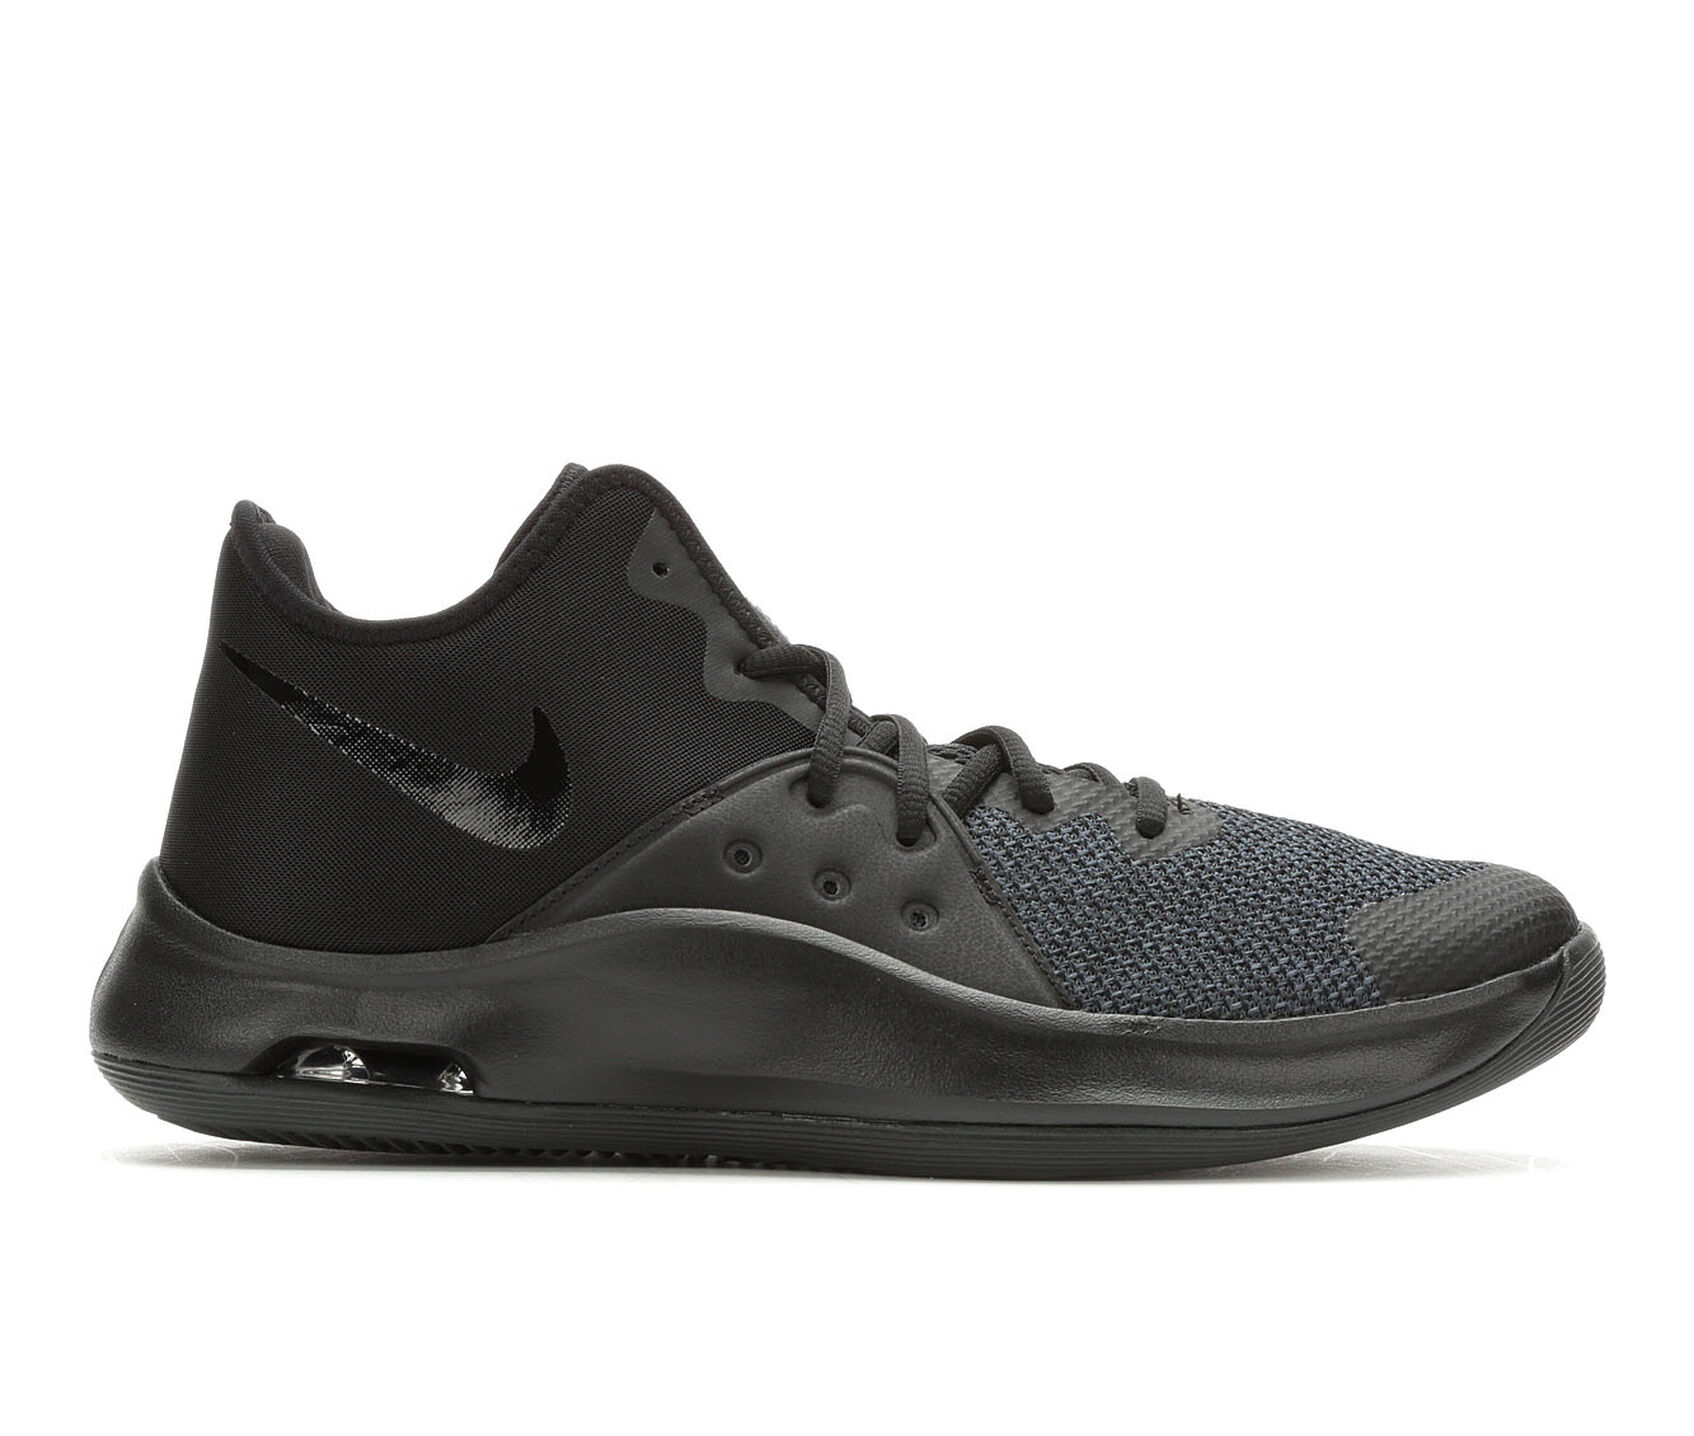 5d6e8b83df8b Men s Nike Air Versitile III Basketball Shoes